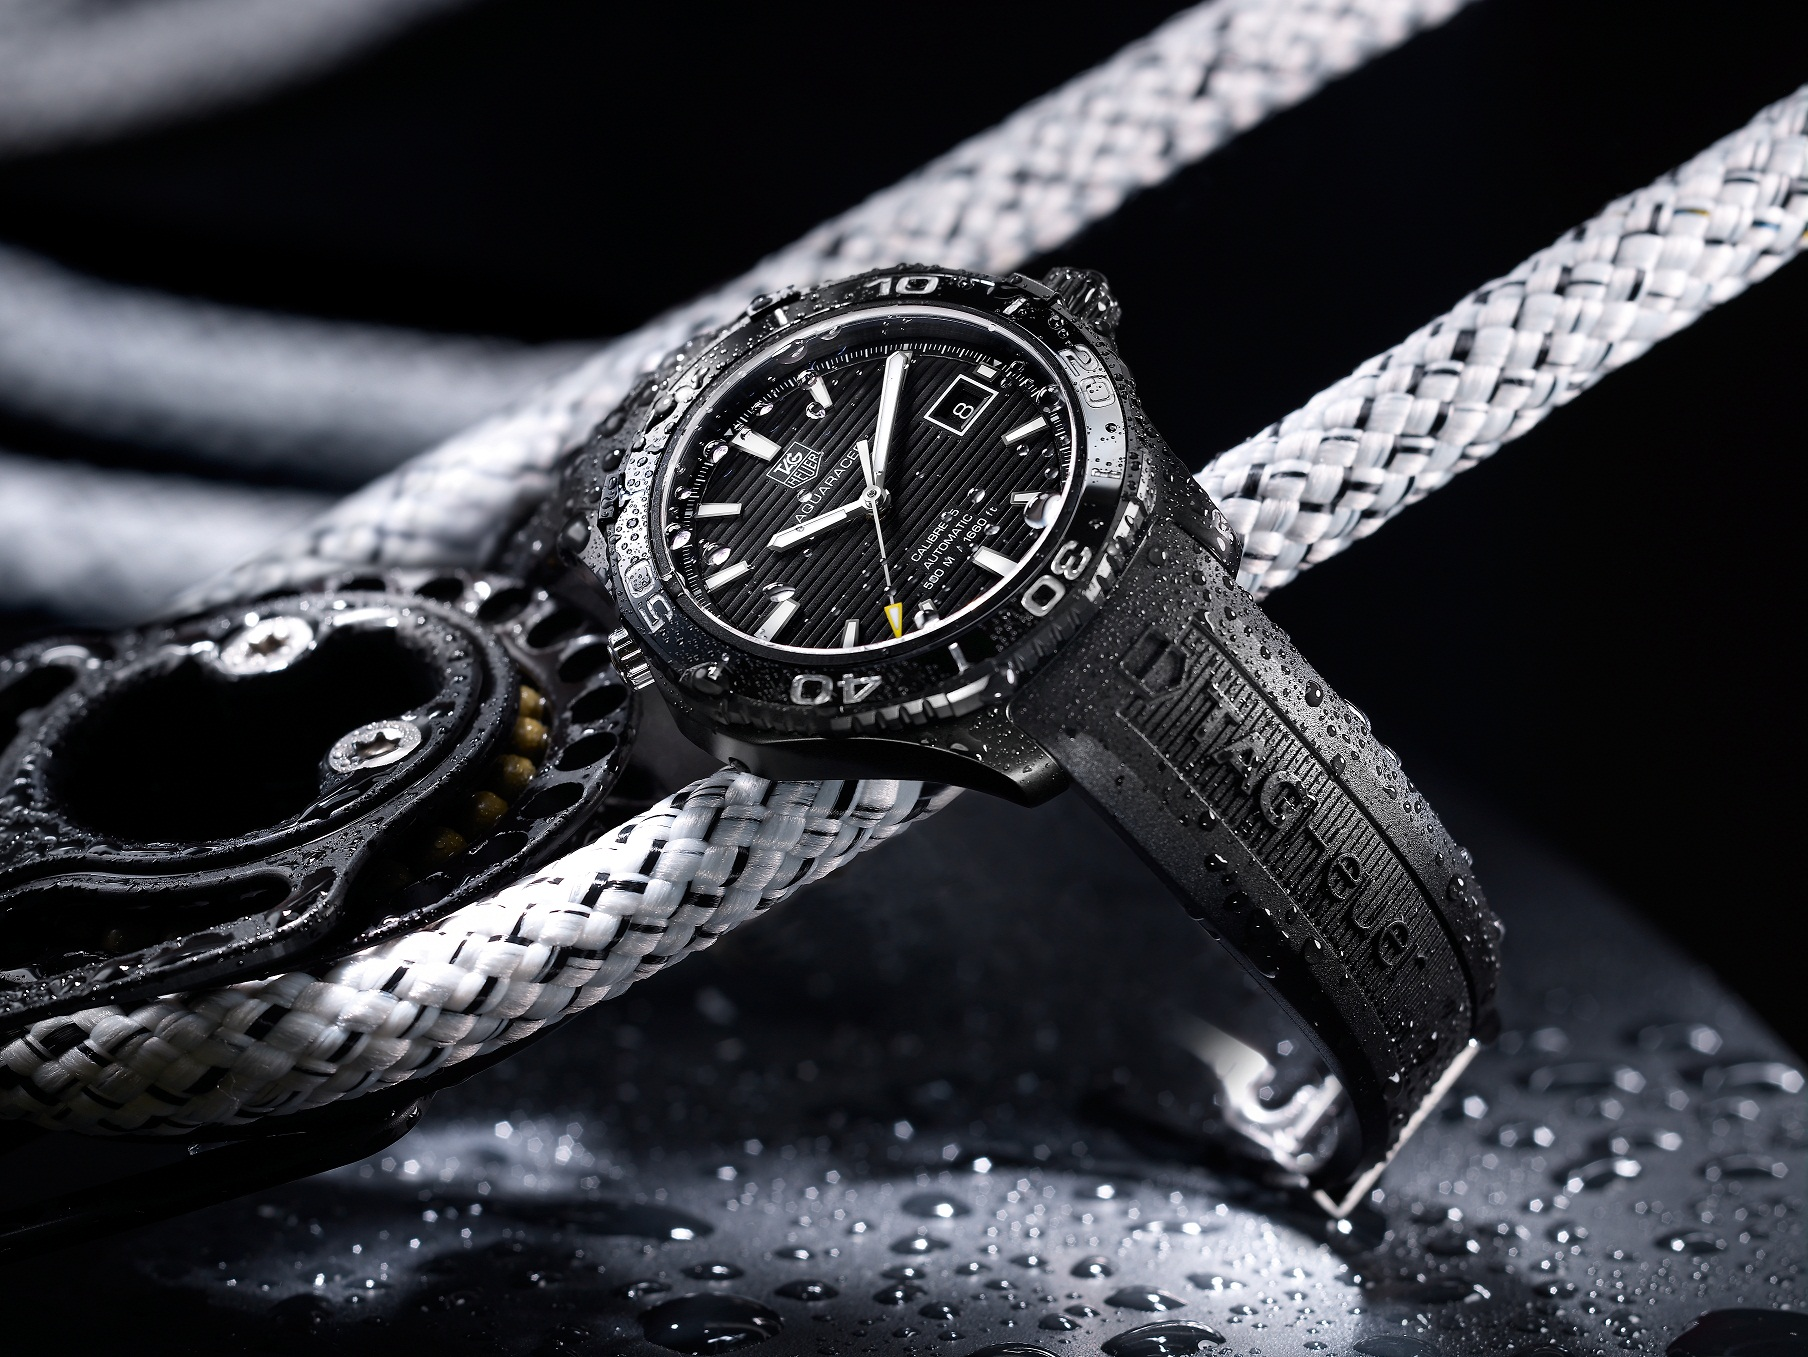 Watch Review  The new Aquaracer 500 M Ceramic from TAG Heuer  0398451361